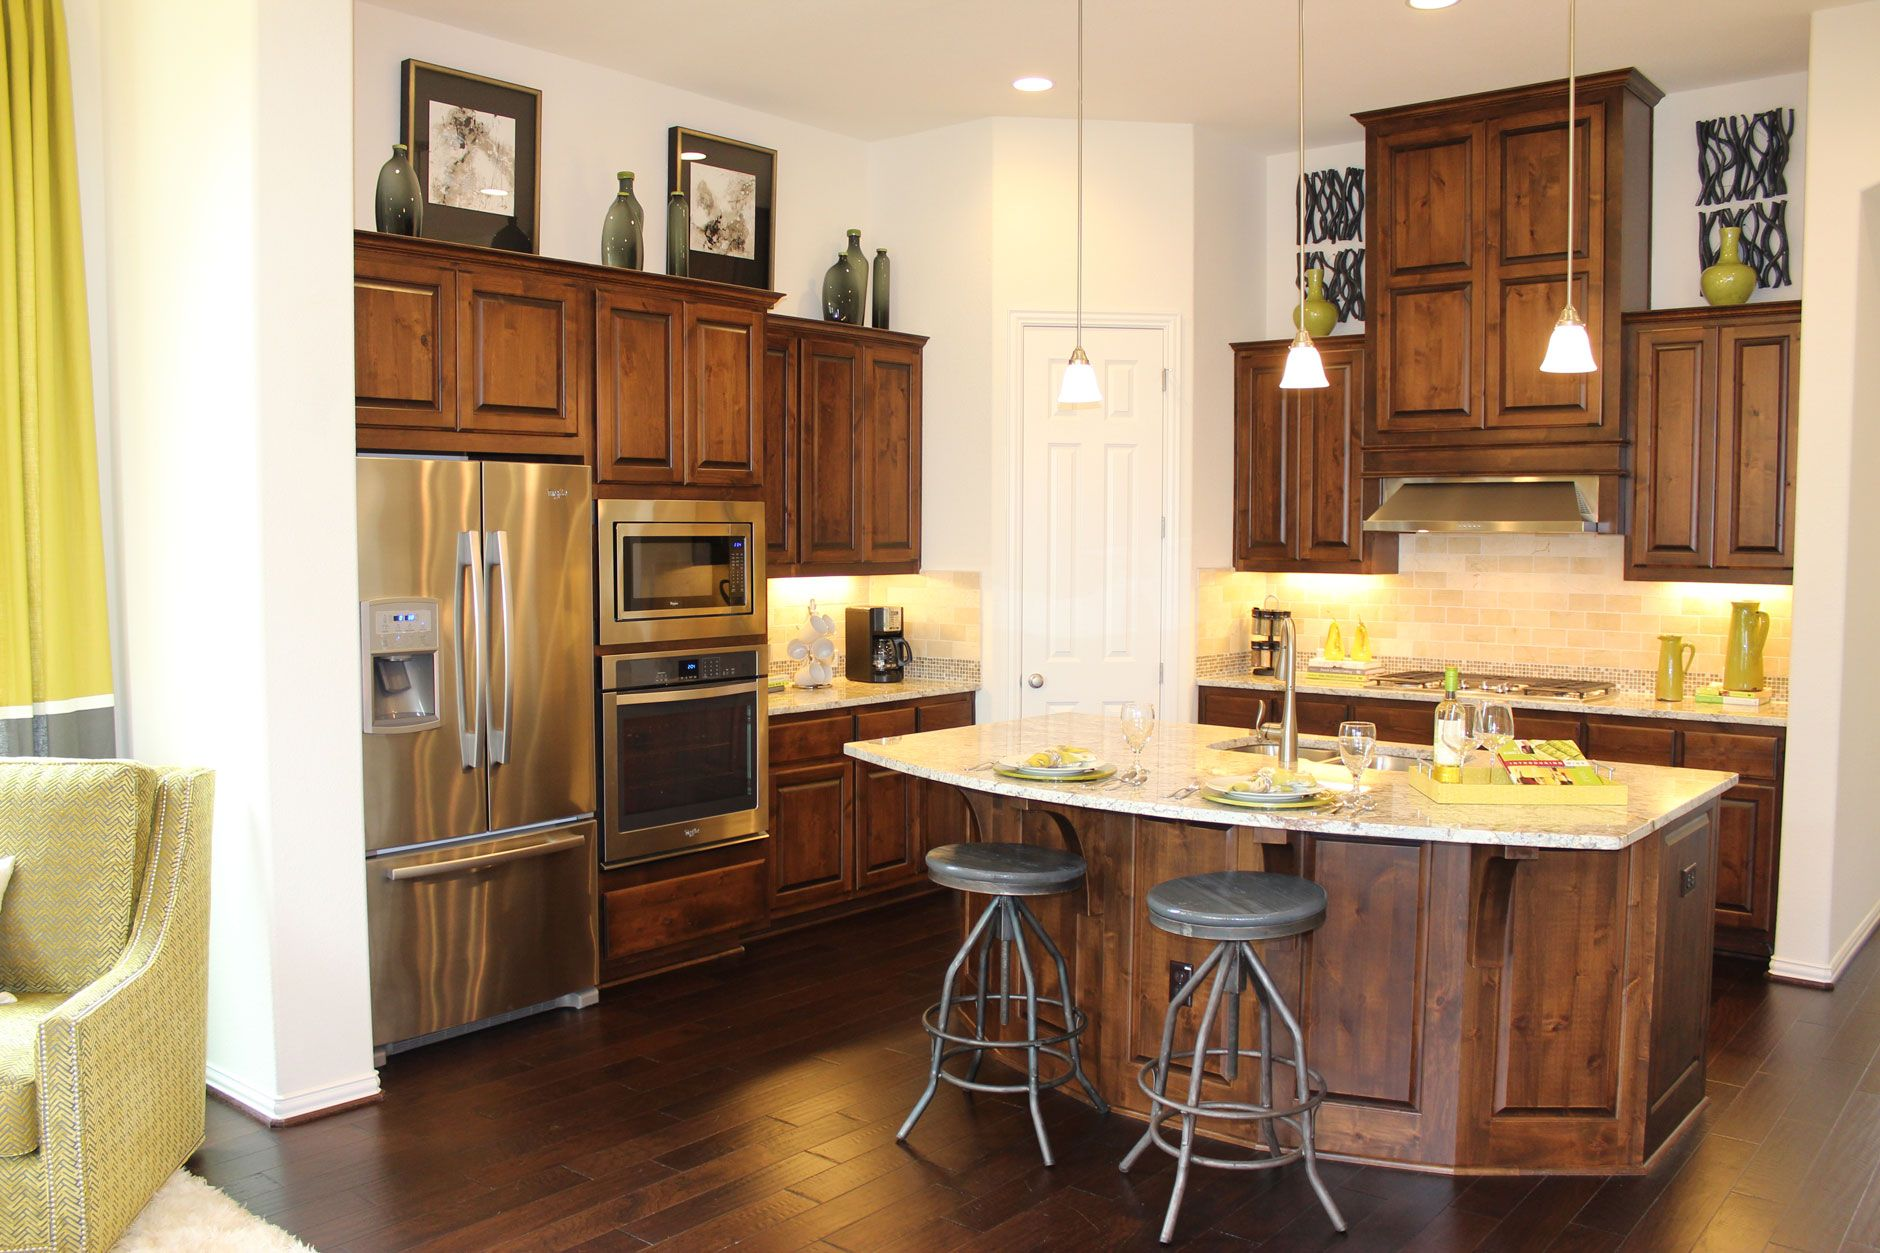 Kitchen Cabinet Doors In Knotty Alder Alder Cabinets New Kitchen Cabinets Knotty Alder Cabinets